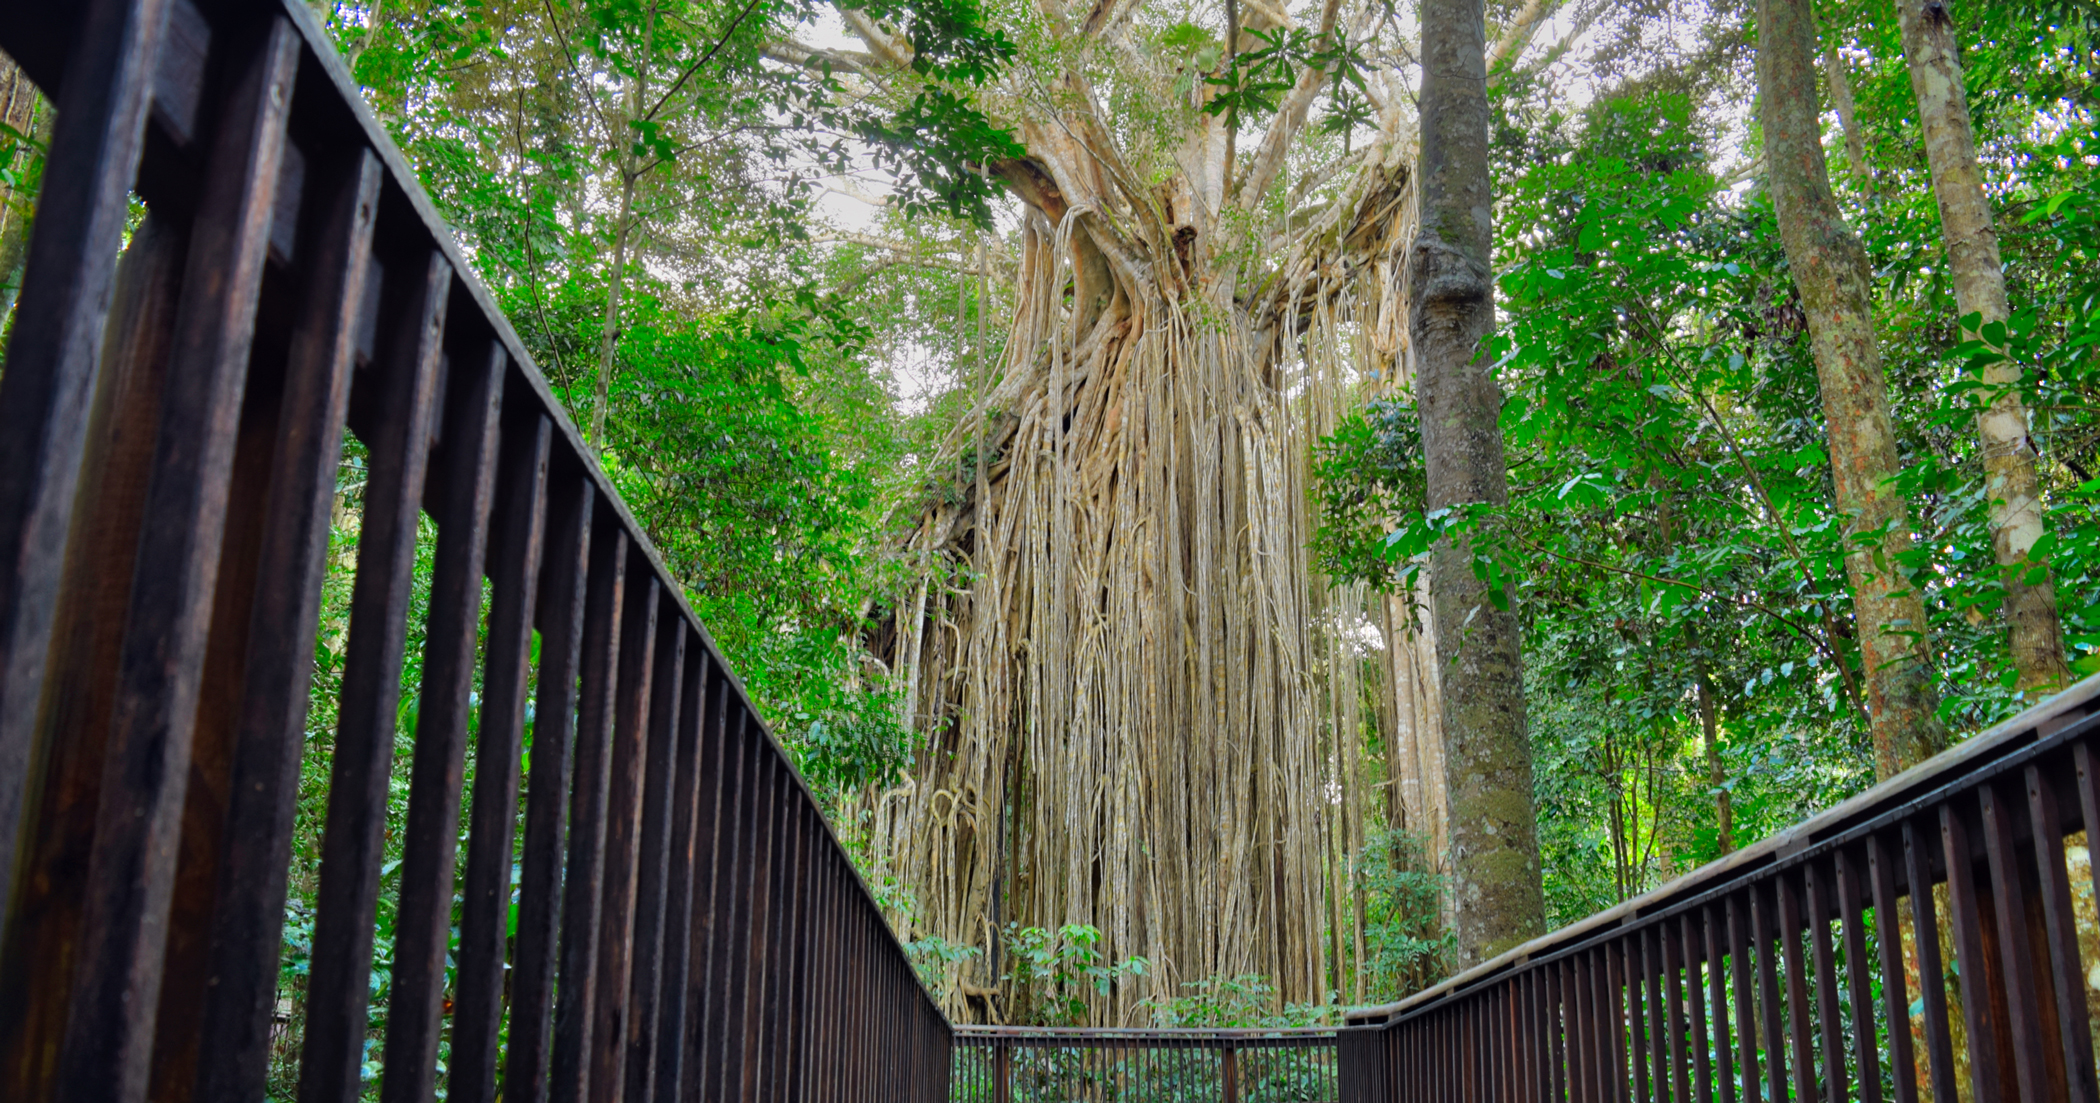 The Curtain Fig Tree.